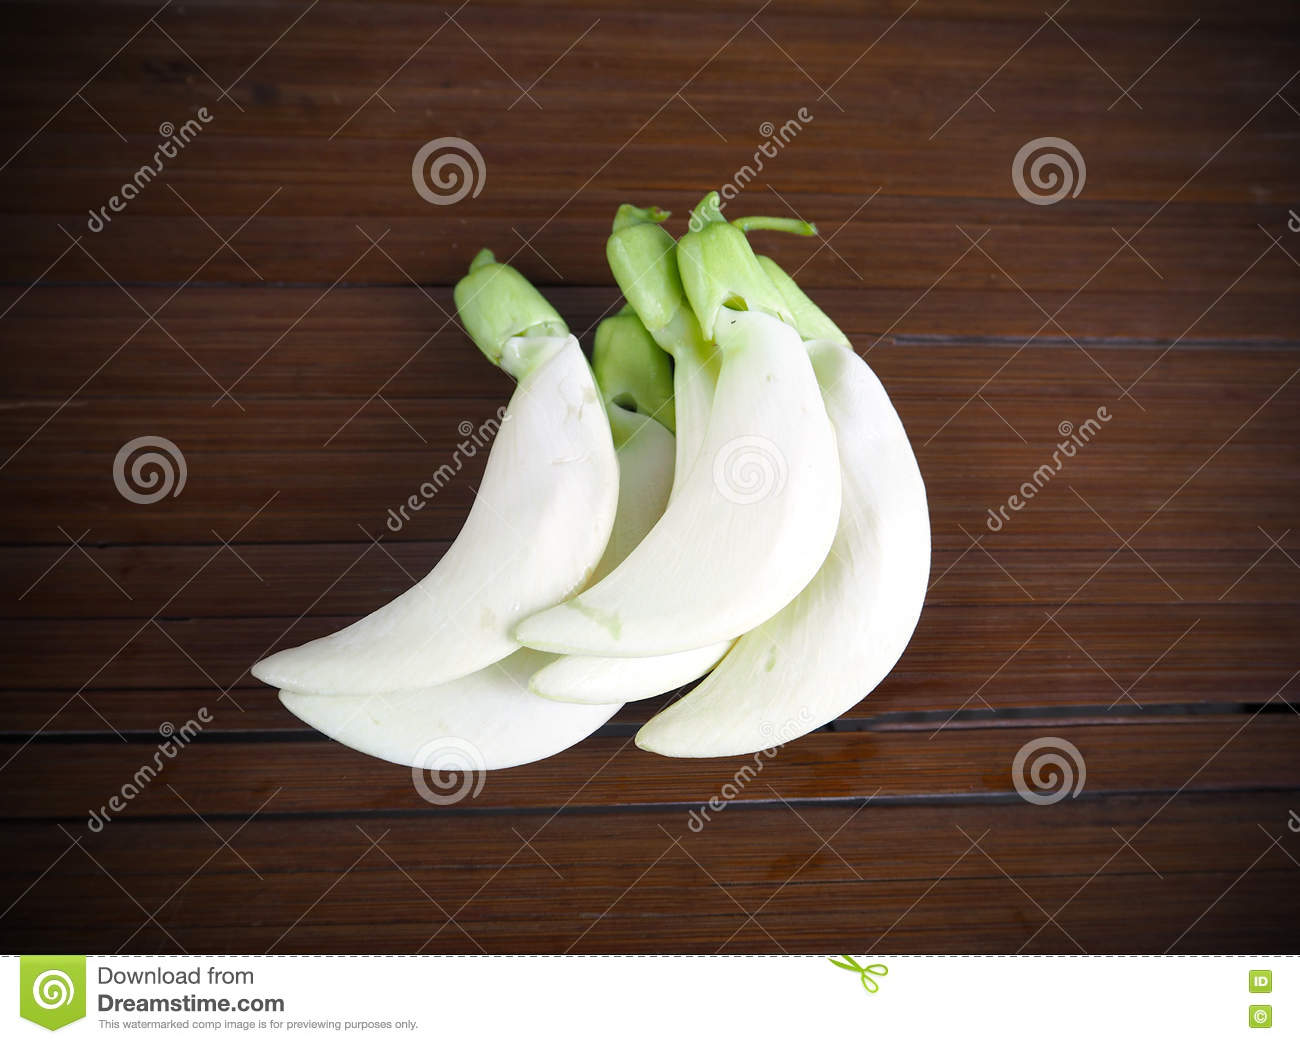 White Agasta Flower From Agasta Plant Thai Vegetable Stock Photo